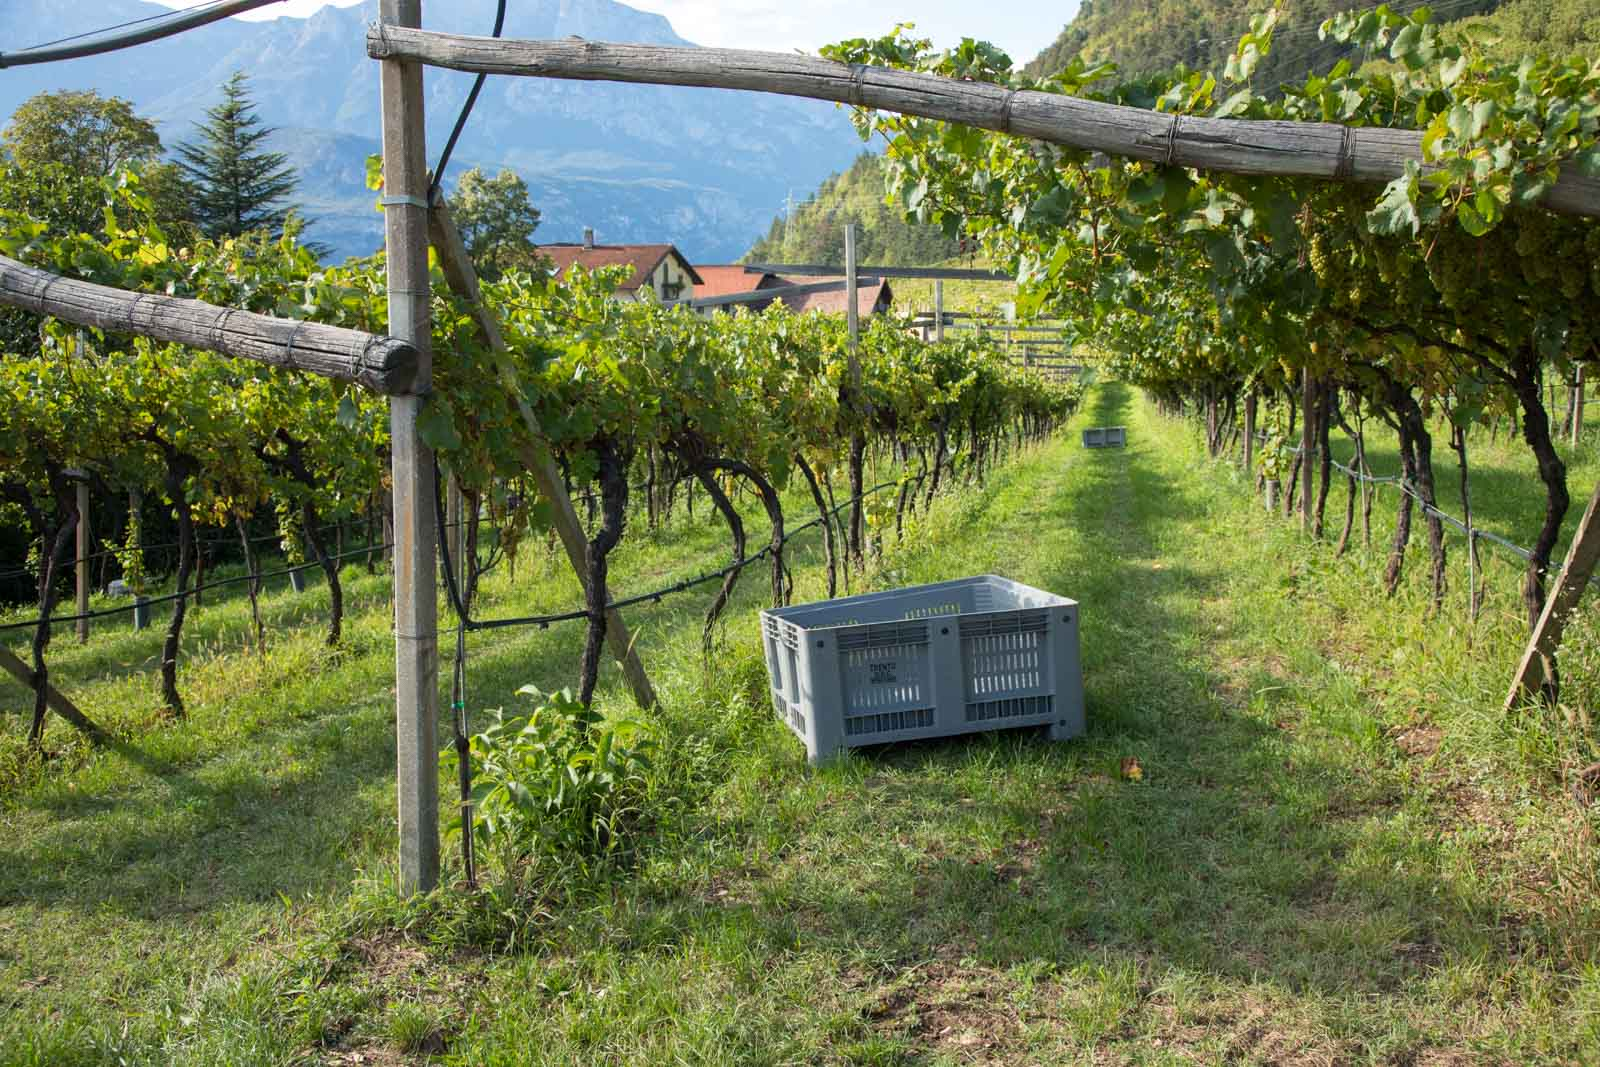 Getting ready for harvest at Maso Martis. ©Kevin Day/Opening a Bottle